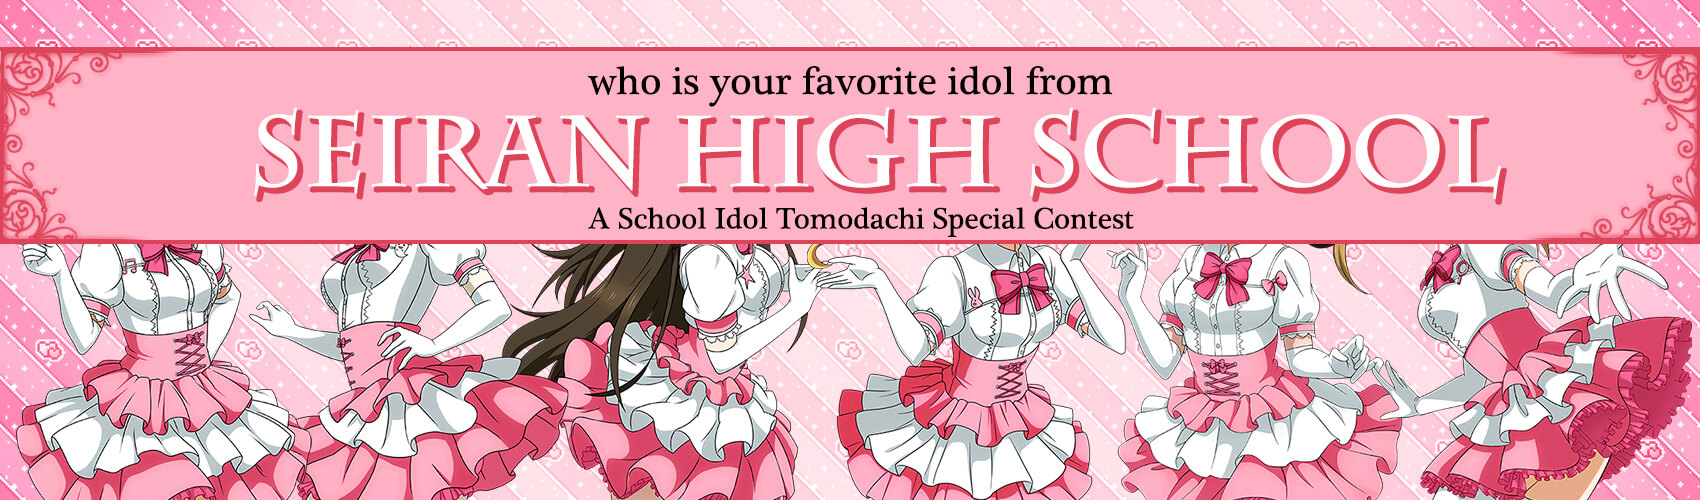 Who's your favorite idol from Seiran High School?